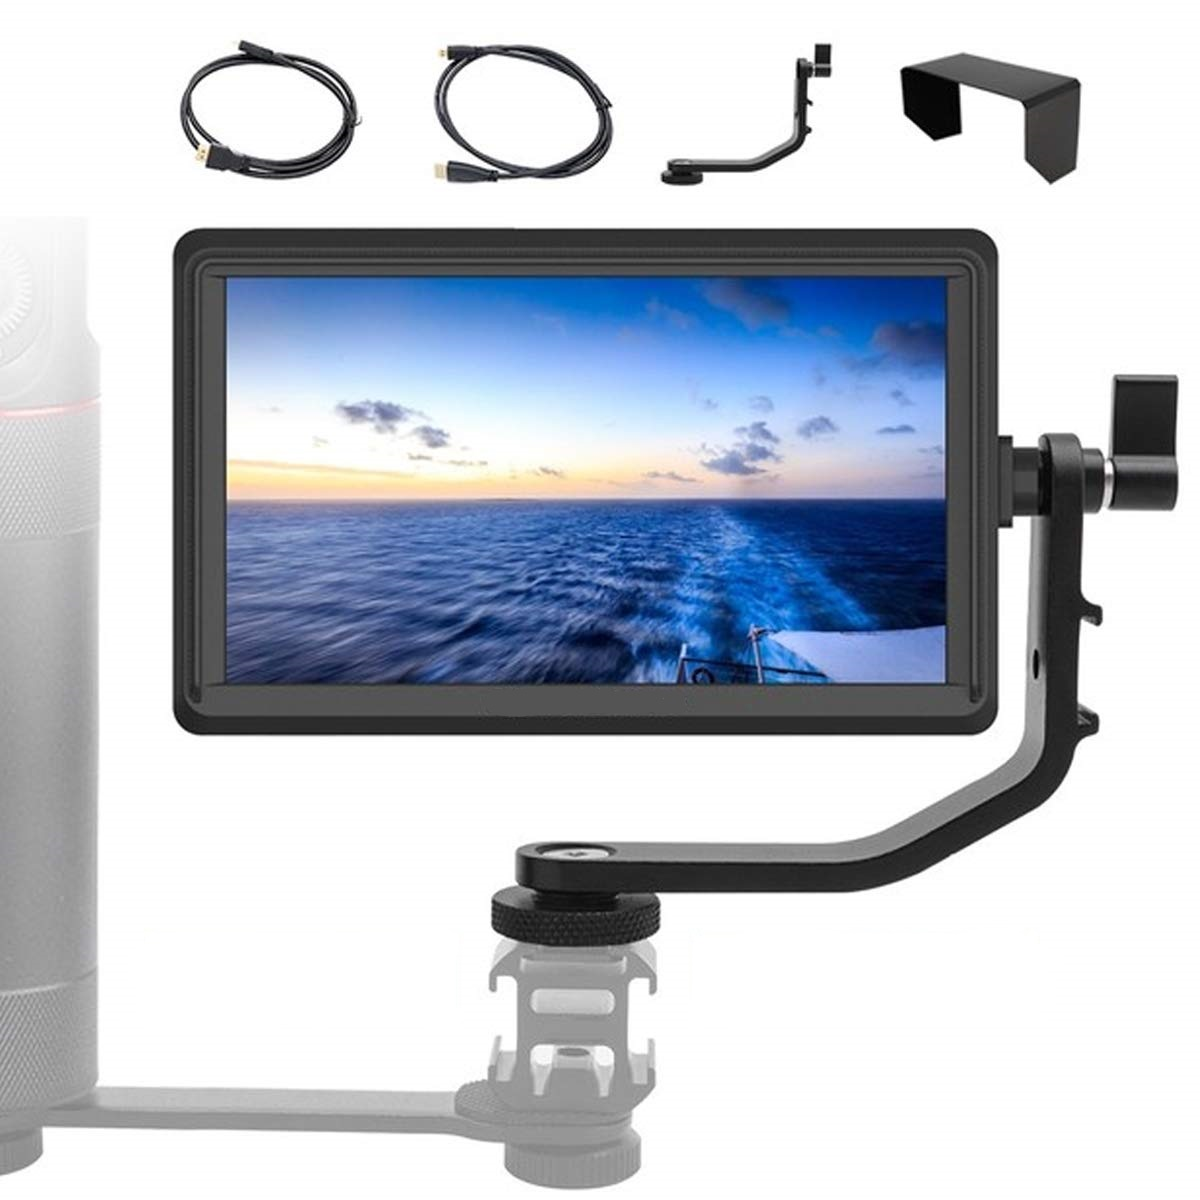 Feelworld Master MA6F 5.5 Inch DSLR Monitor 4K HDMI 8.4V DC in/Out, Full HD 1920x720p LCD Camera Field Monitor Tilt Arm Included